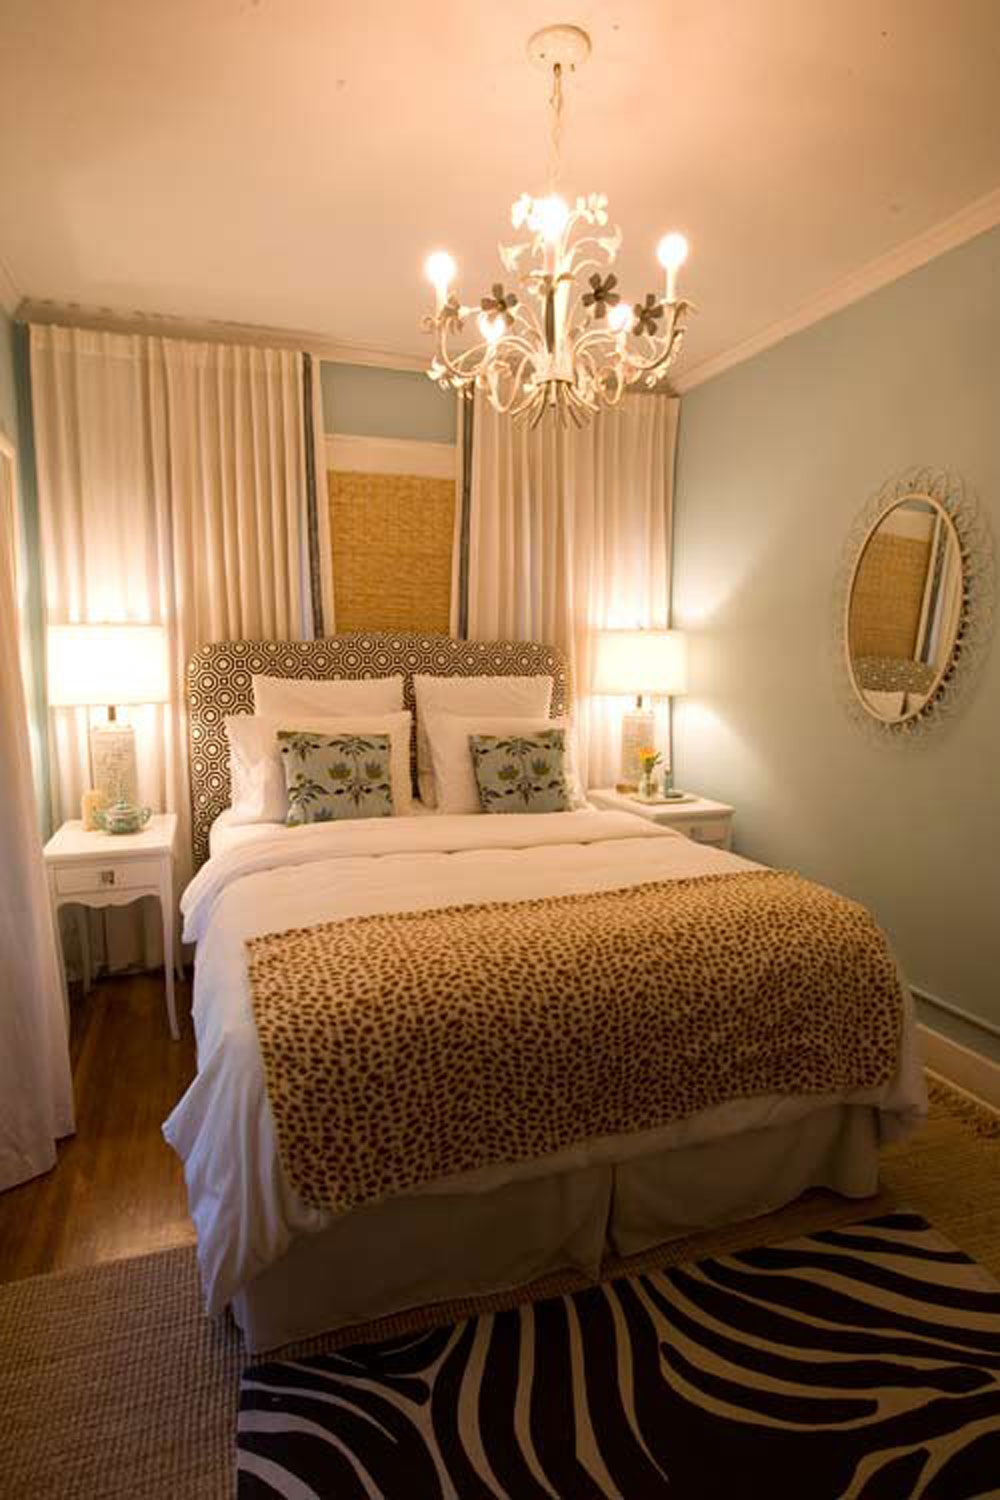 Design Tips For Decorating A Small Bedroom On. Design Tips For Decorating A Small Bedroom On A Budget